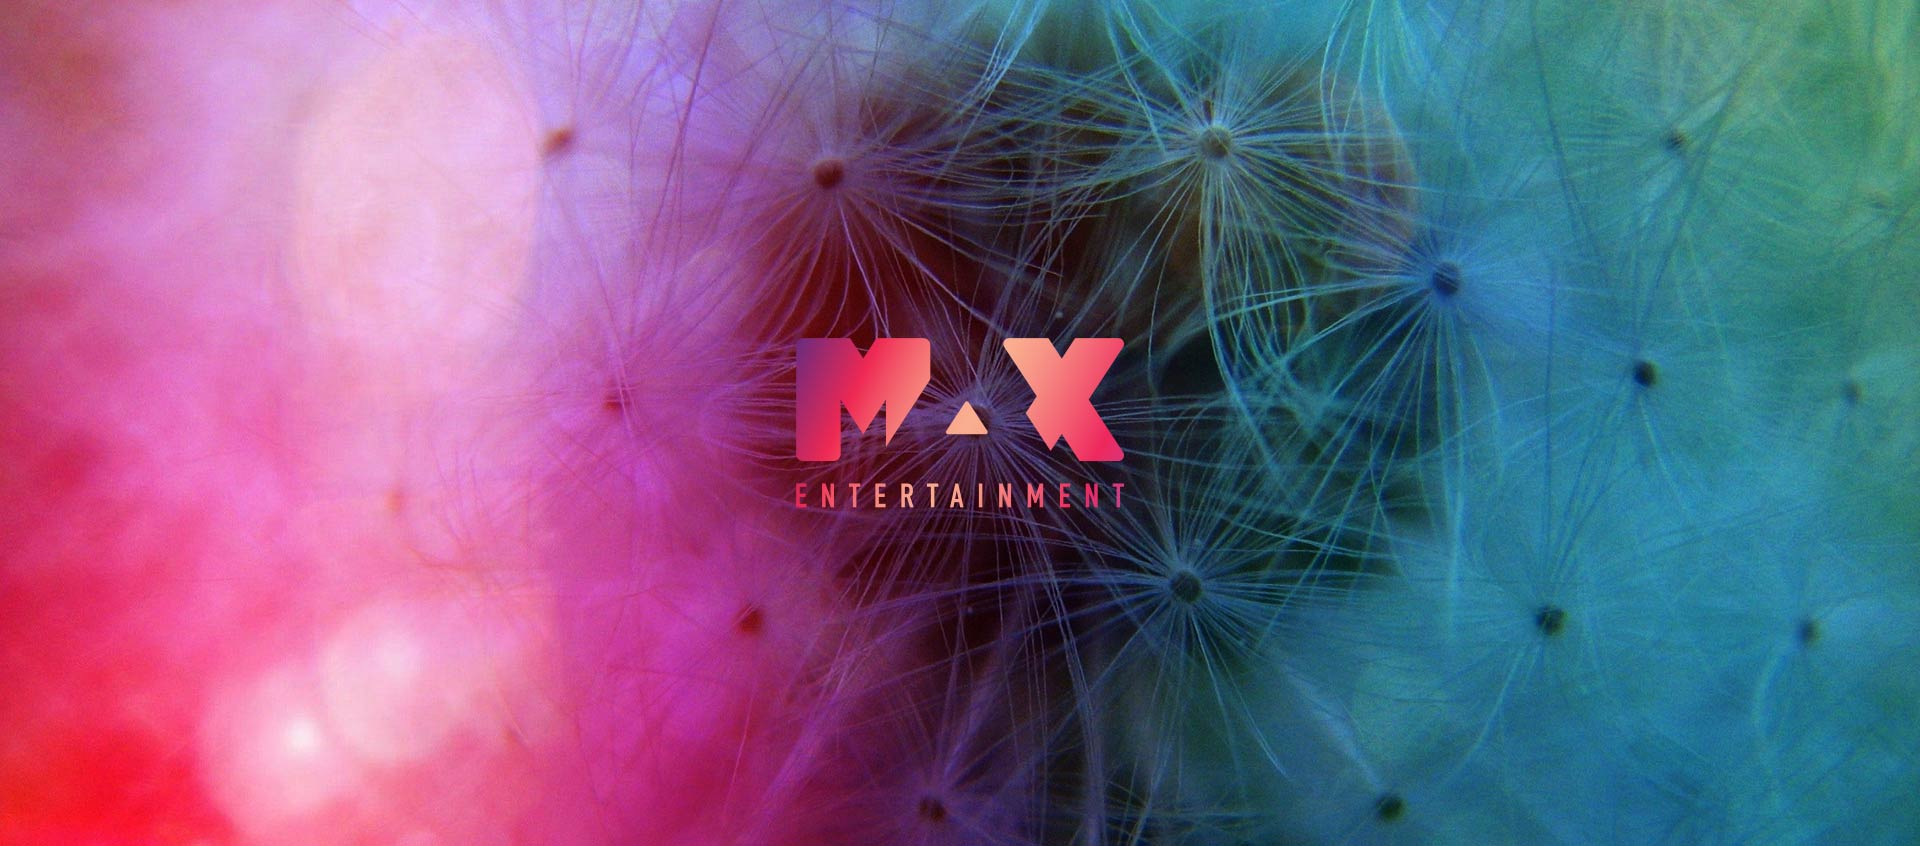 max-entertainment-home-page-header-test-2